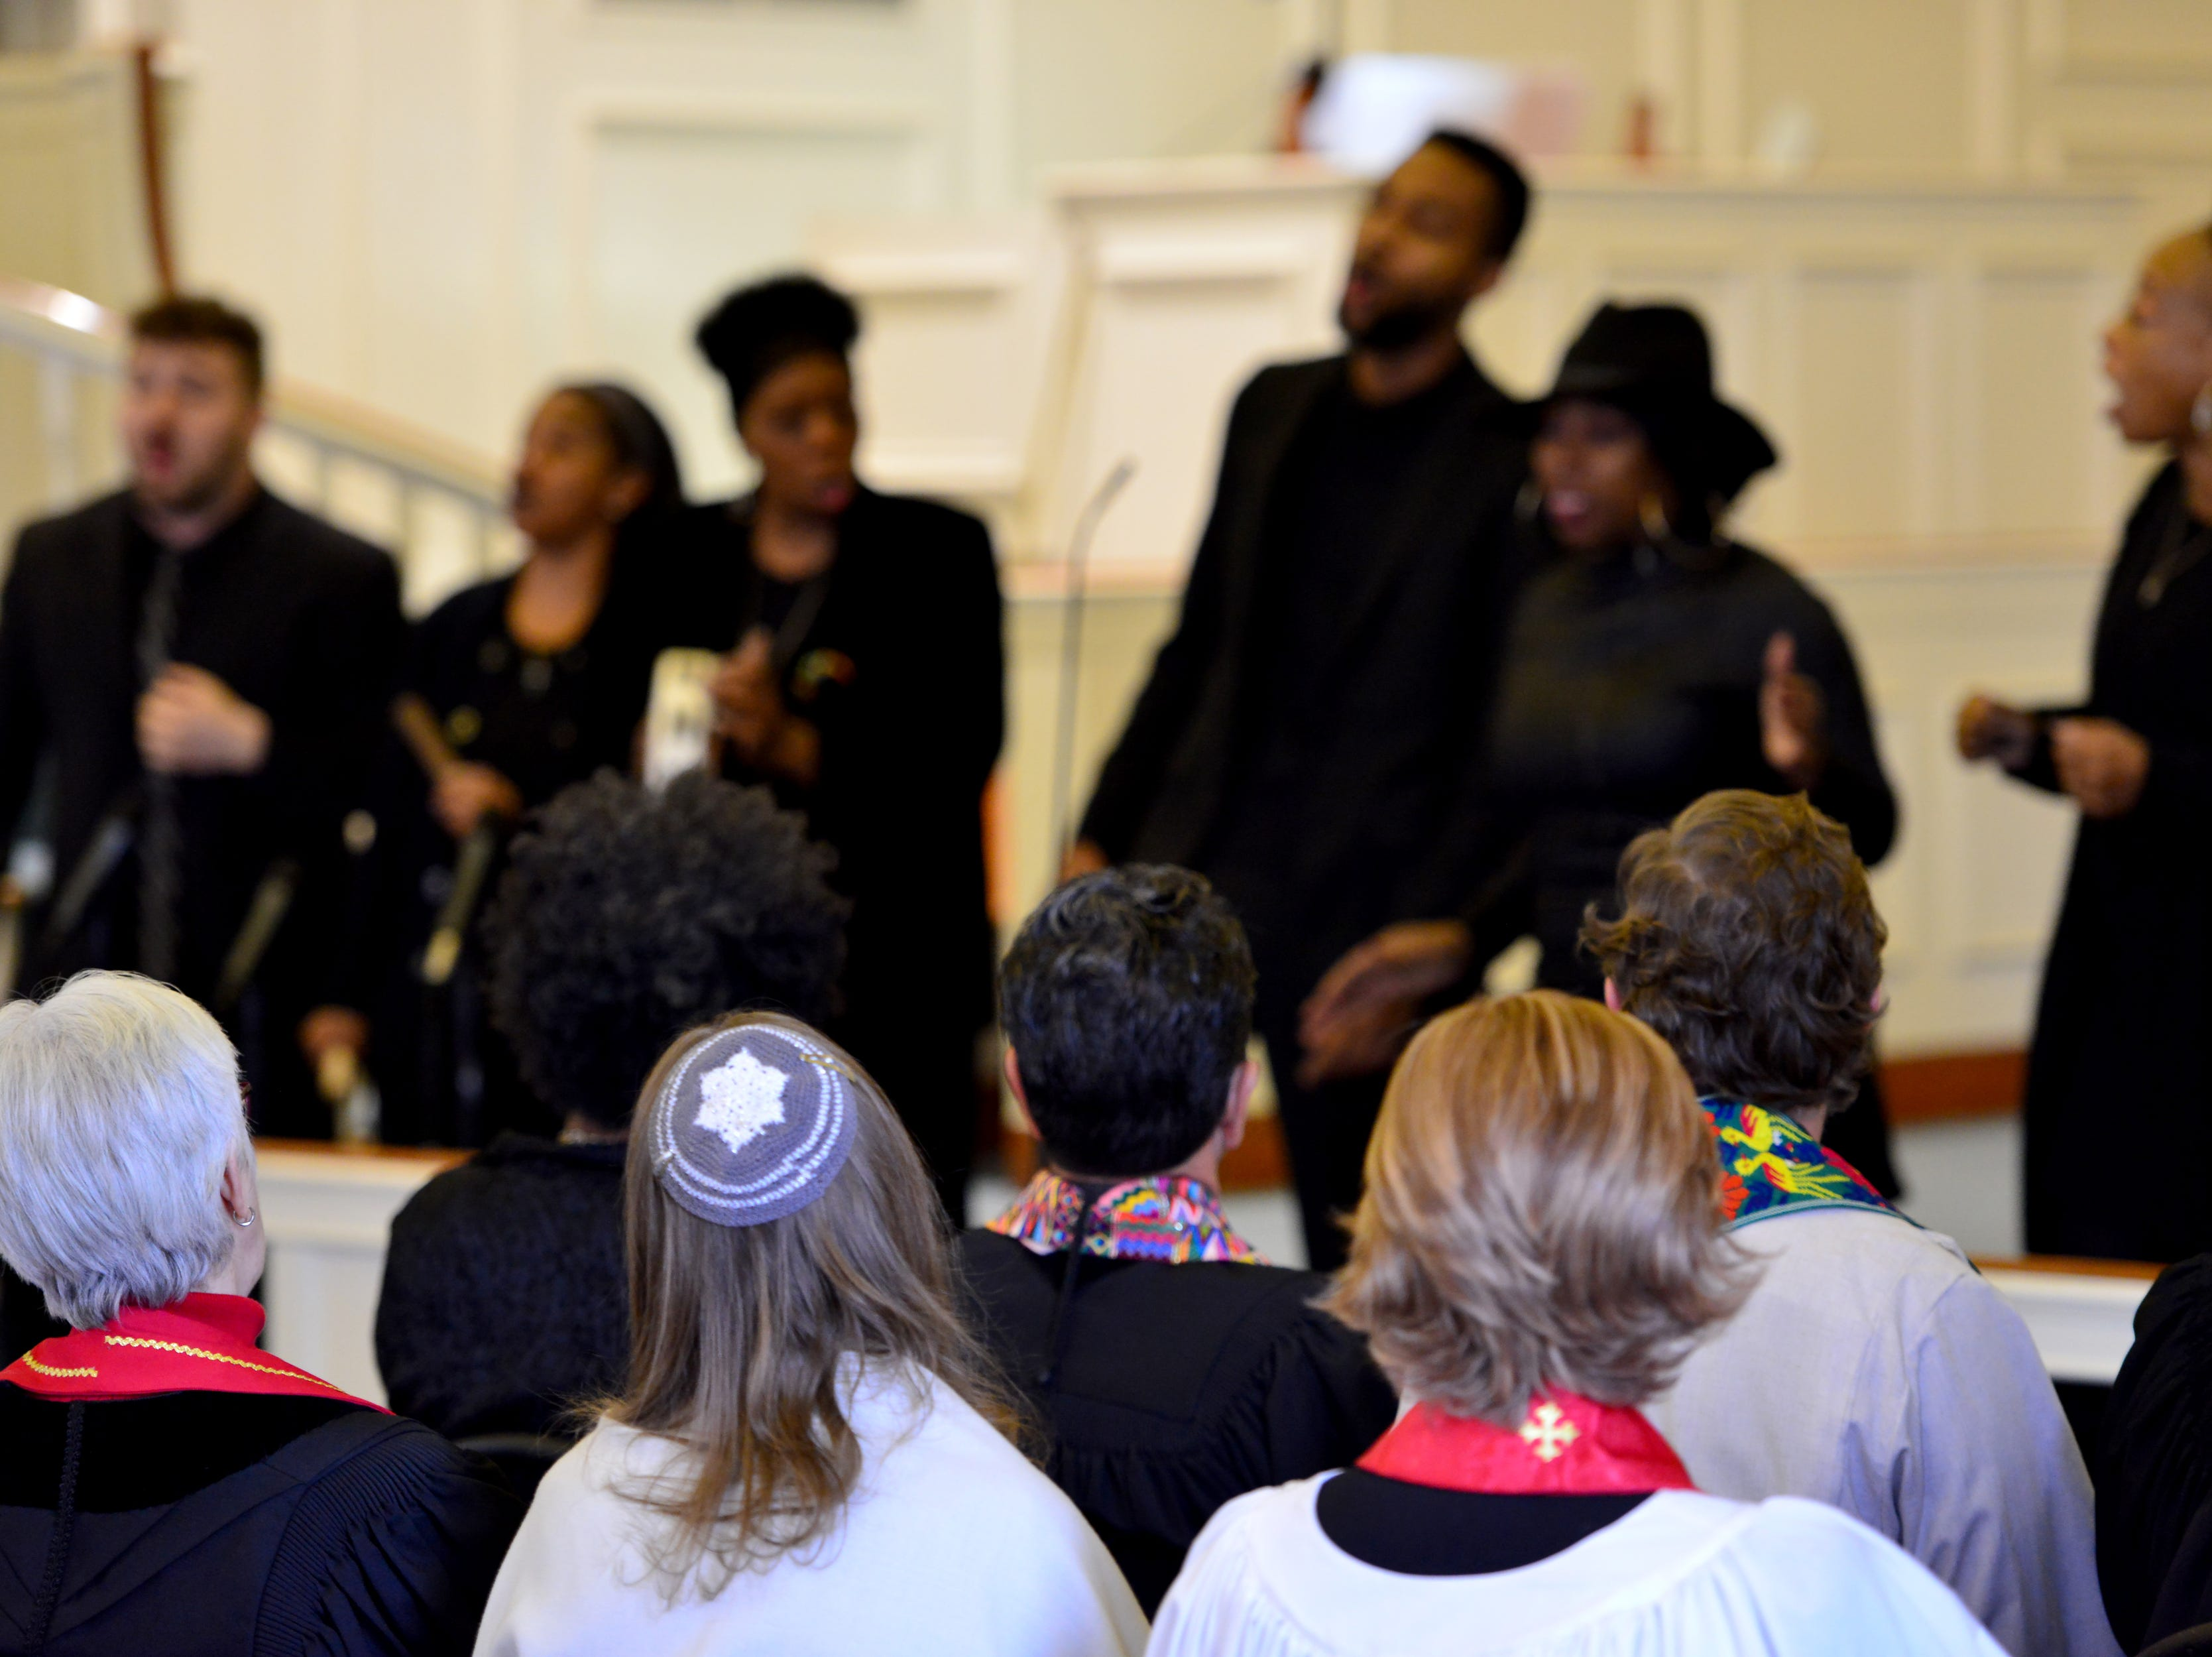 The interfaith service had many religions present at the Ridgewood United Methodist Church, which held its 37th year of honoring Dr. Martin Luther King, Jr. in Ridgewood, N.J. on Monday January 21, 2019. Area residents and religious leaders from many faiths attended the annual event.